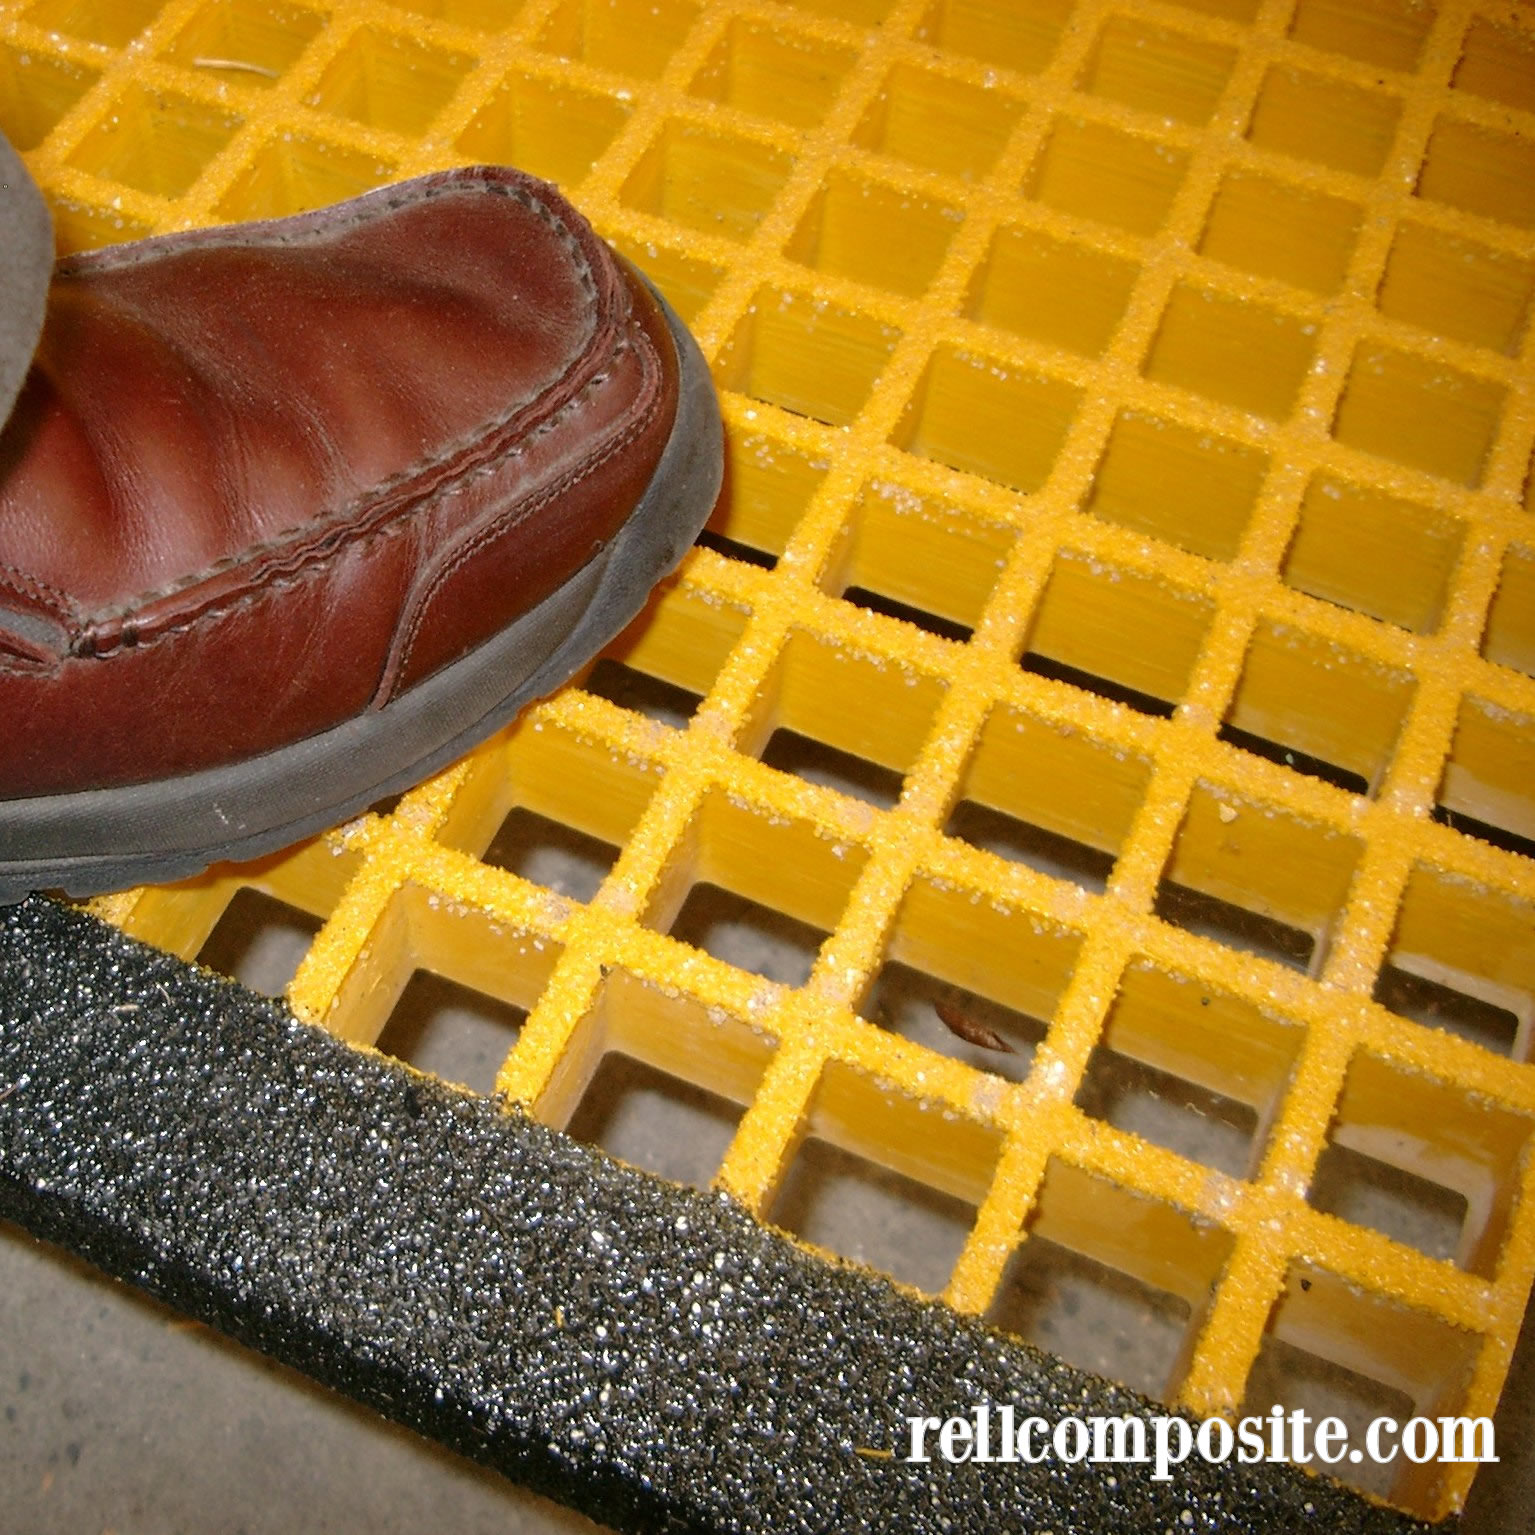 inspiring non slip stair treads in yellow for stair care step ideas